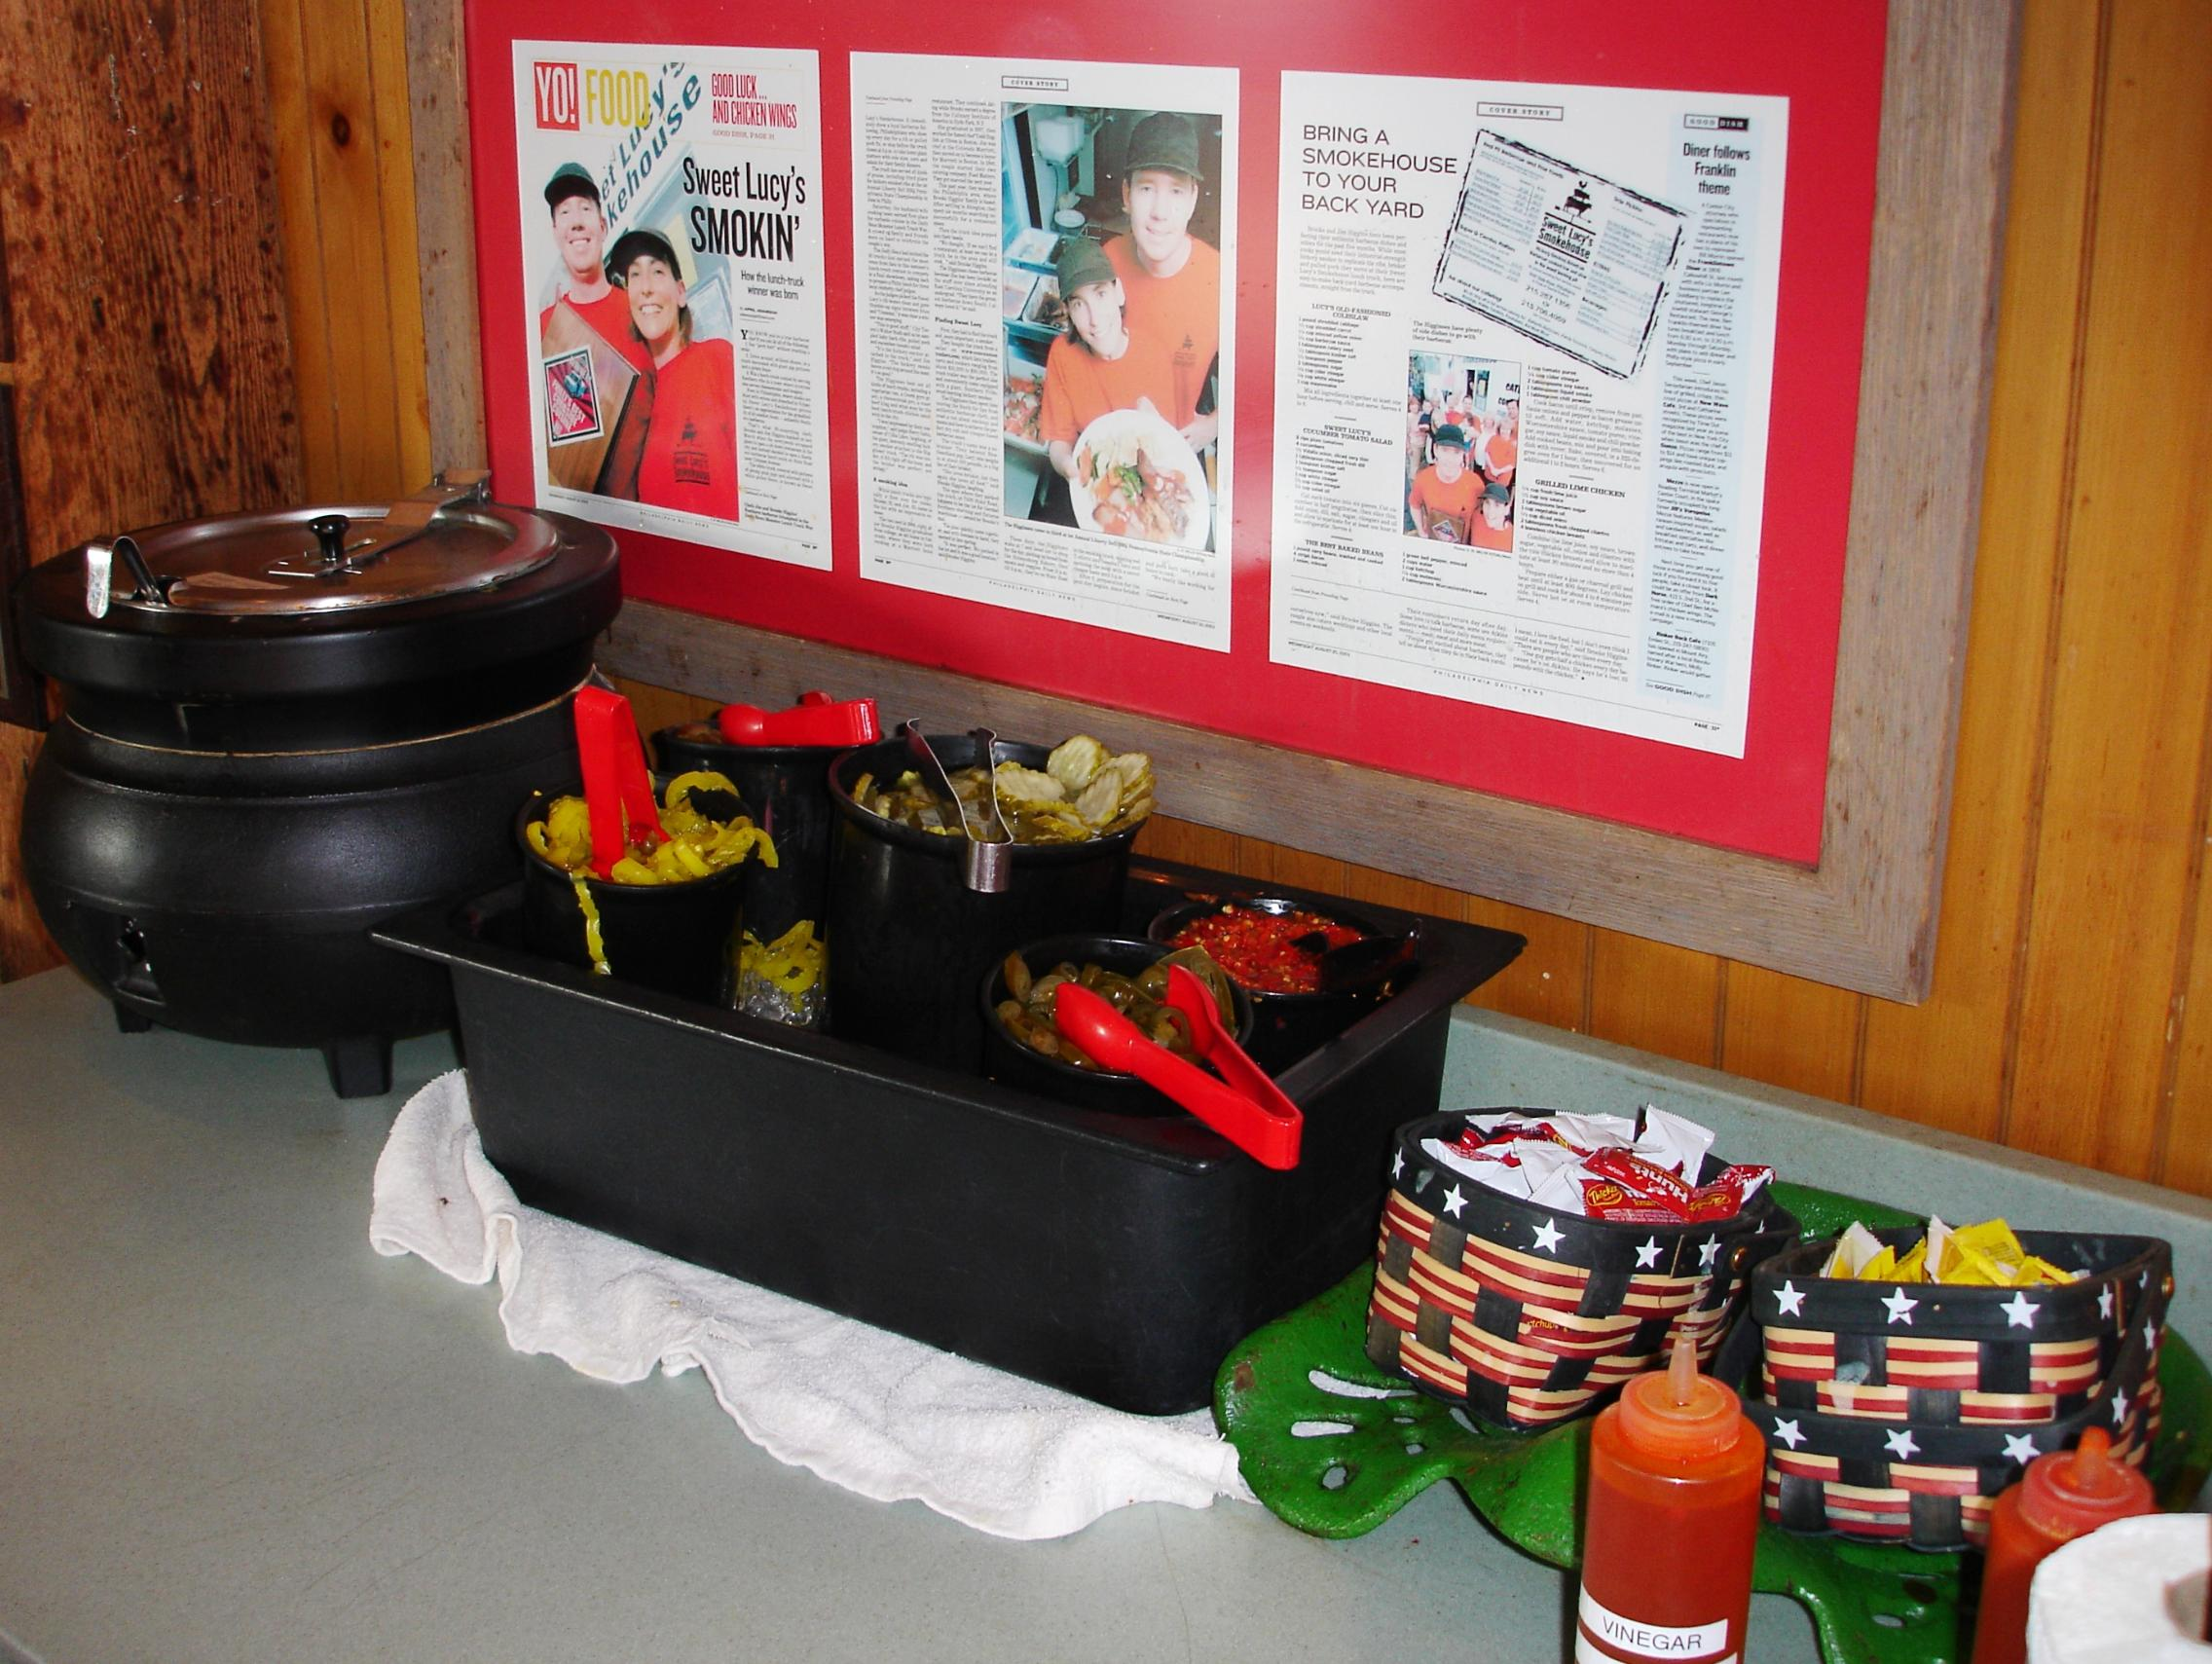 Barbecue sauce is kept warm at the condiments table.